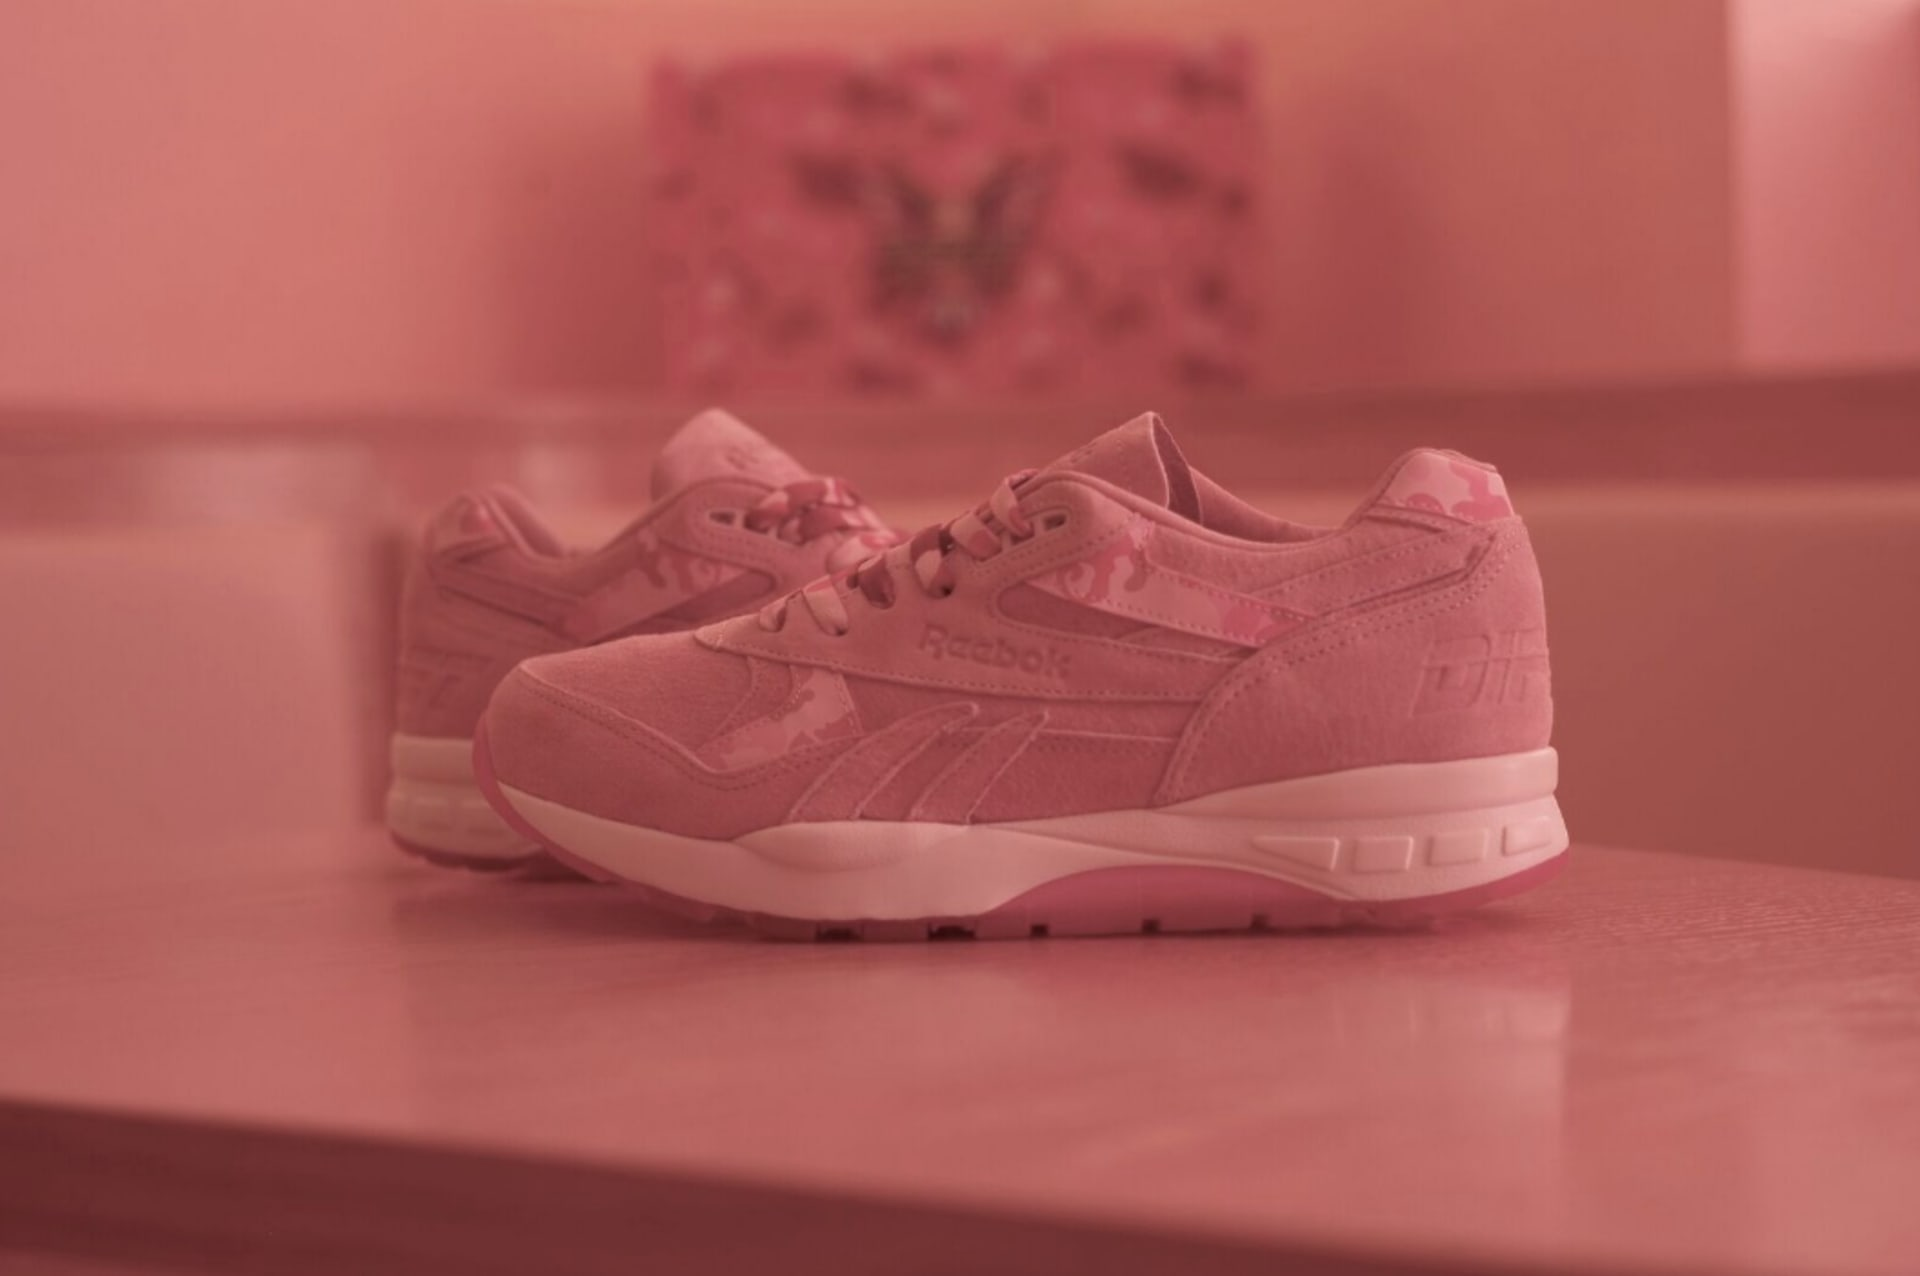 c4ab01f6 Cam'ron Wants Everyone to Wear His Pink Sneakers - Exclusive ...